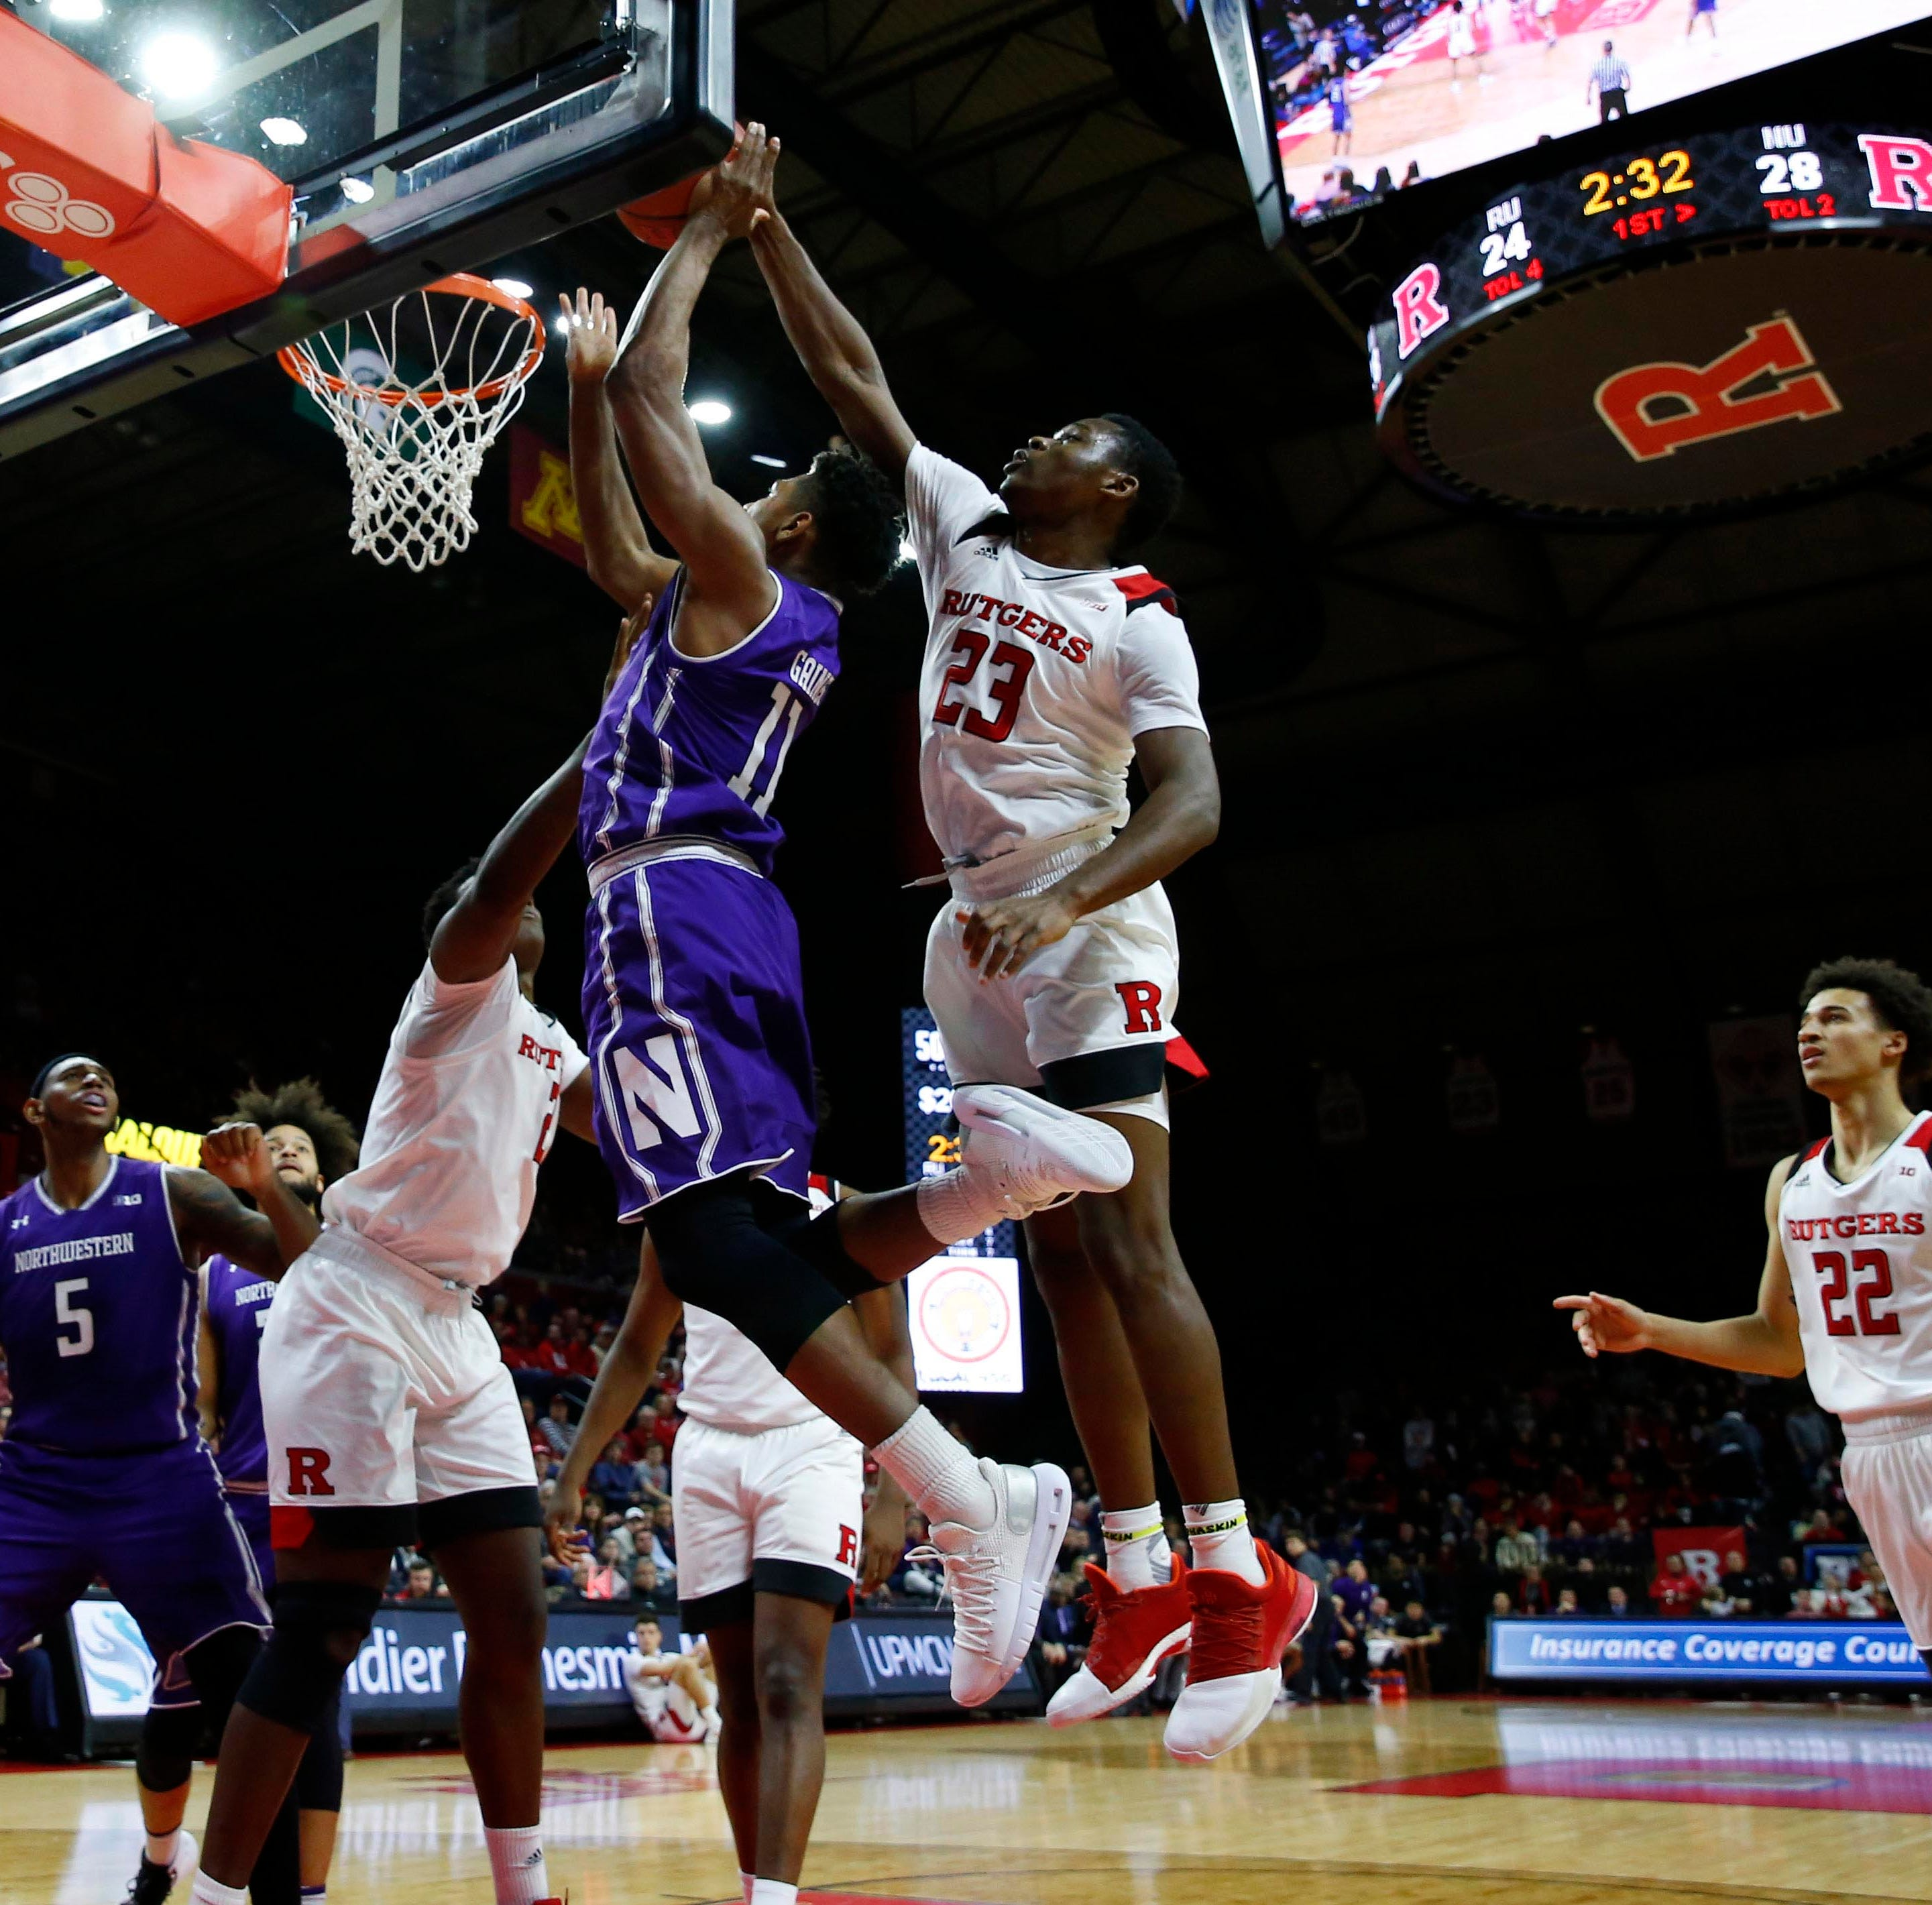 Rutgers basketball: Free-throw meltdown in loss to struggling Northwestern